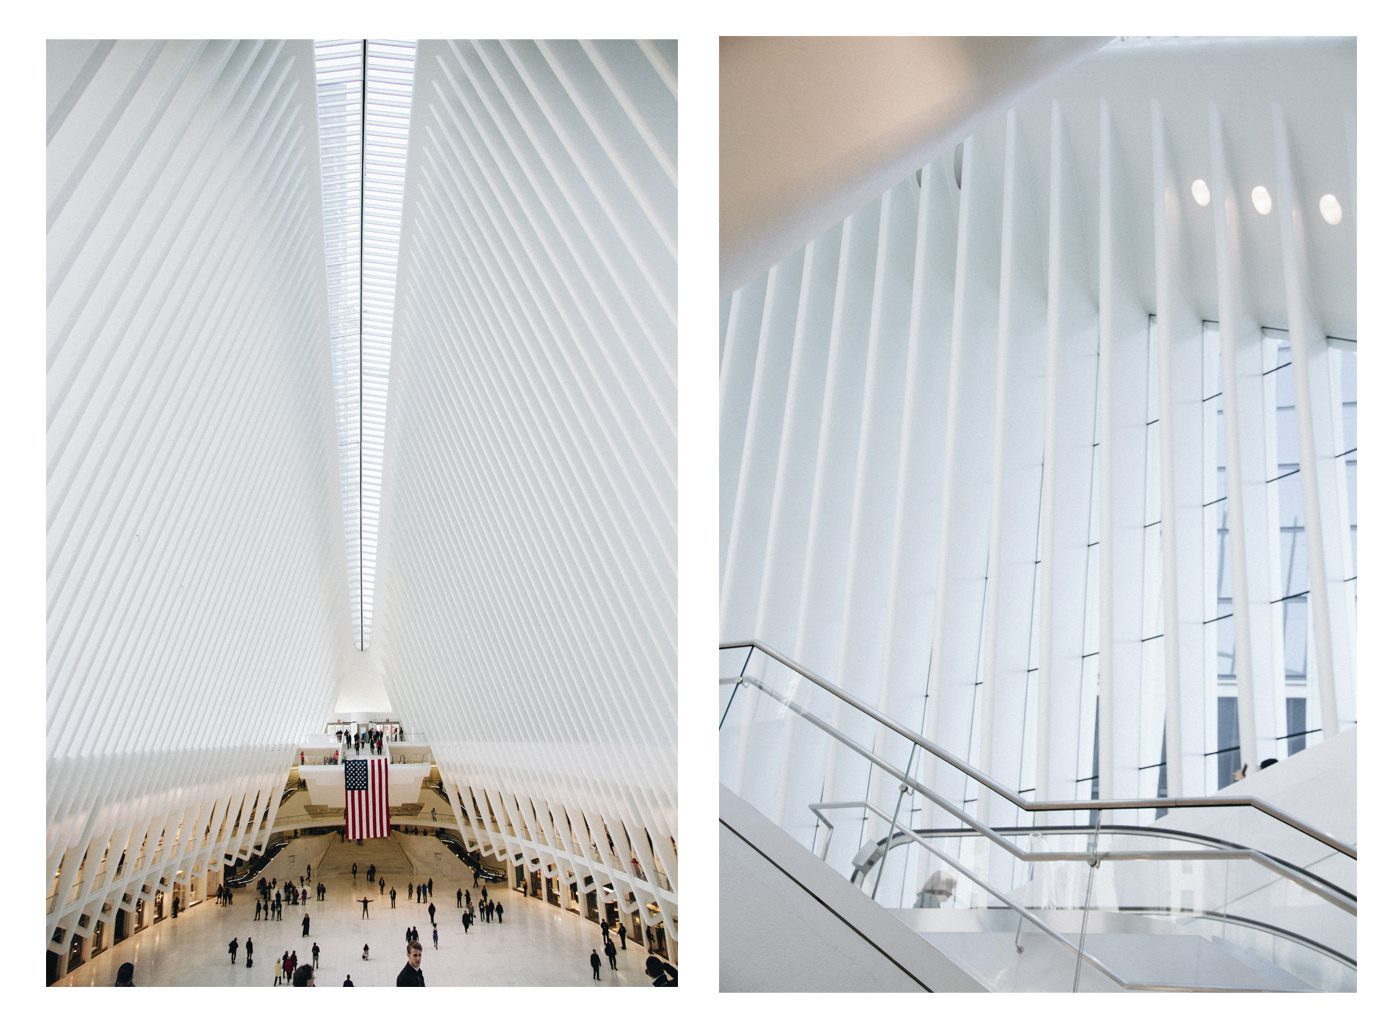 architectural pictures from the oculus in new york city